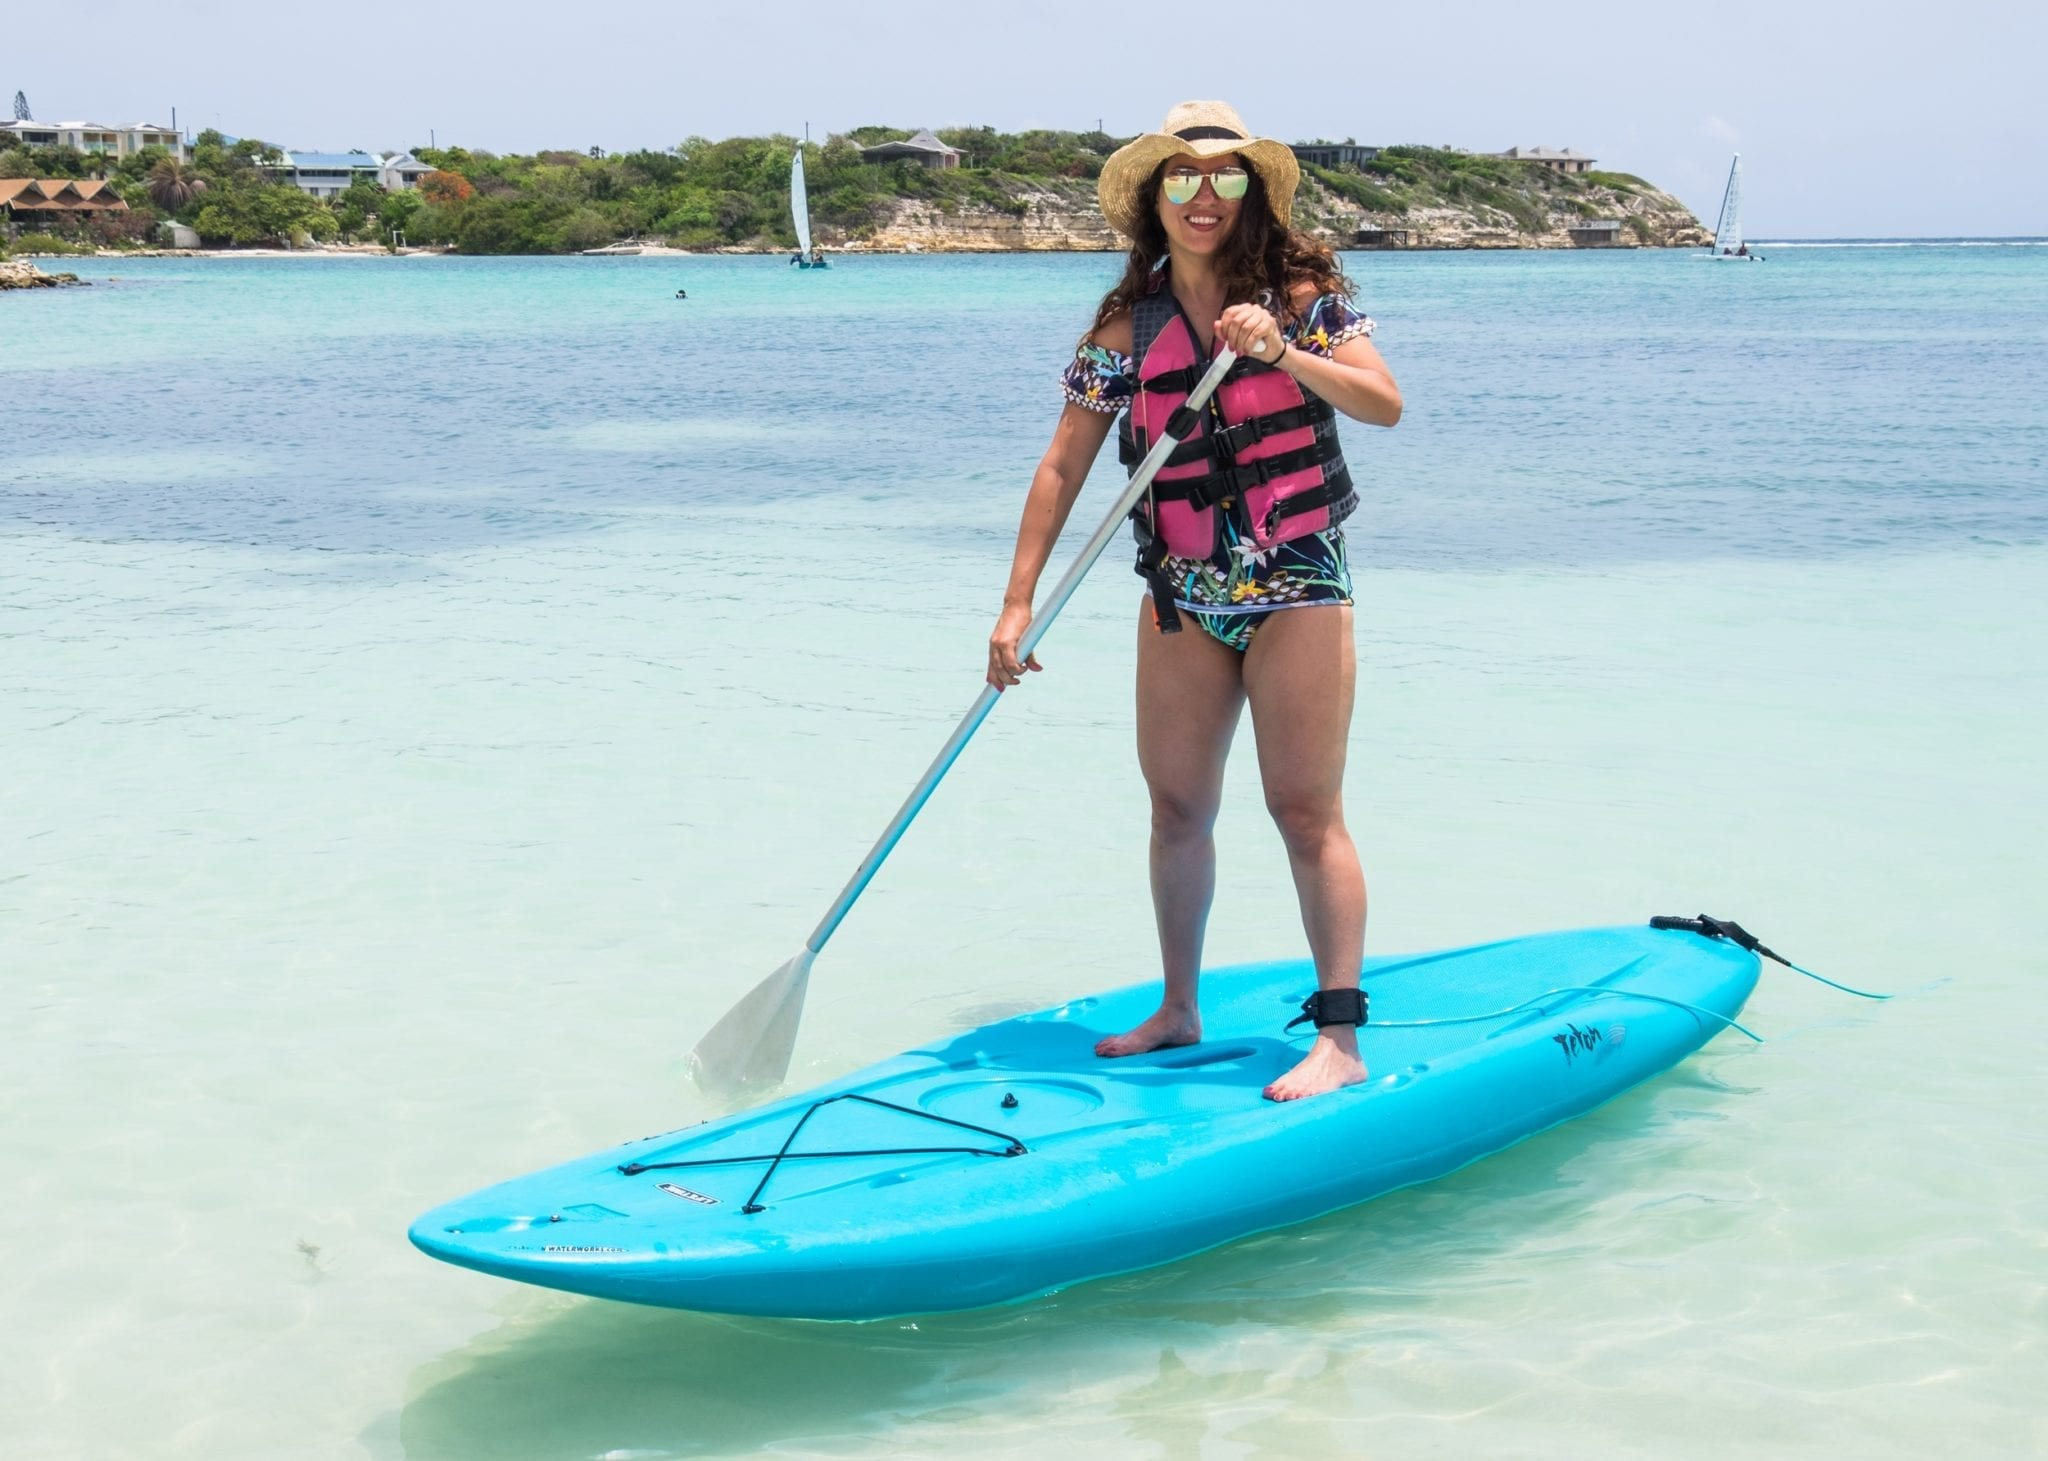 Kate paddles herself on a stand-up paddle board over turquoise water in Antigua. The board is bright blue and she wears a life vest over a bathing suit with a straw hat and aviator sunglasses.